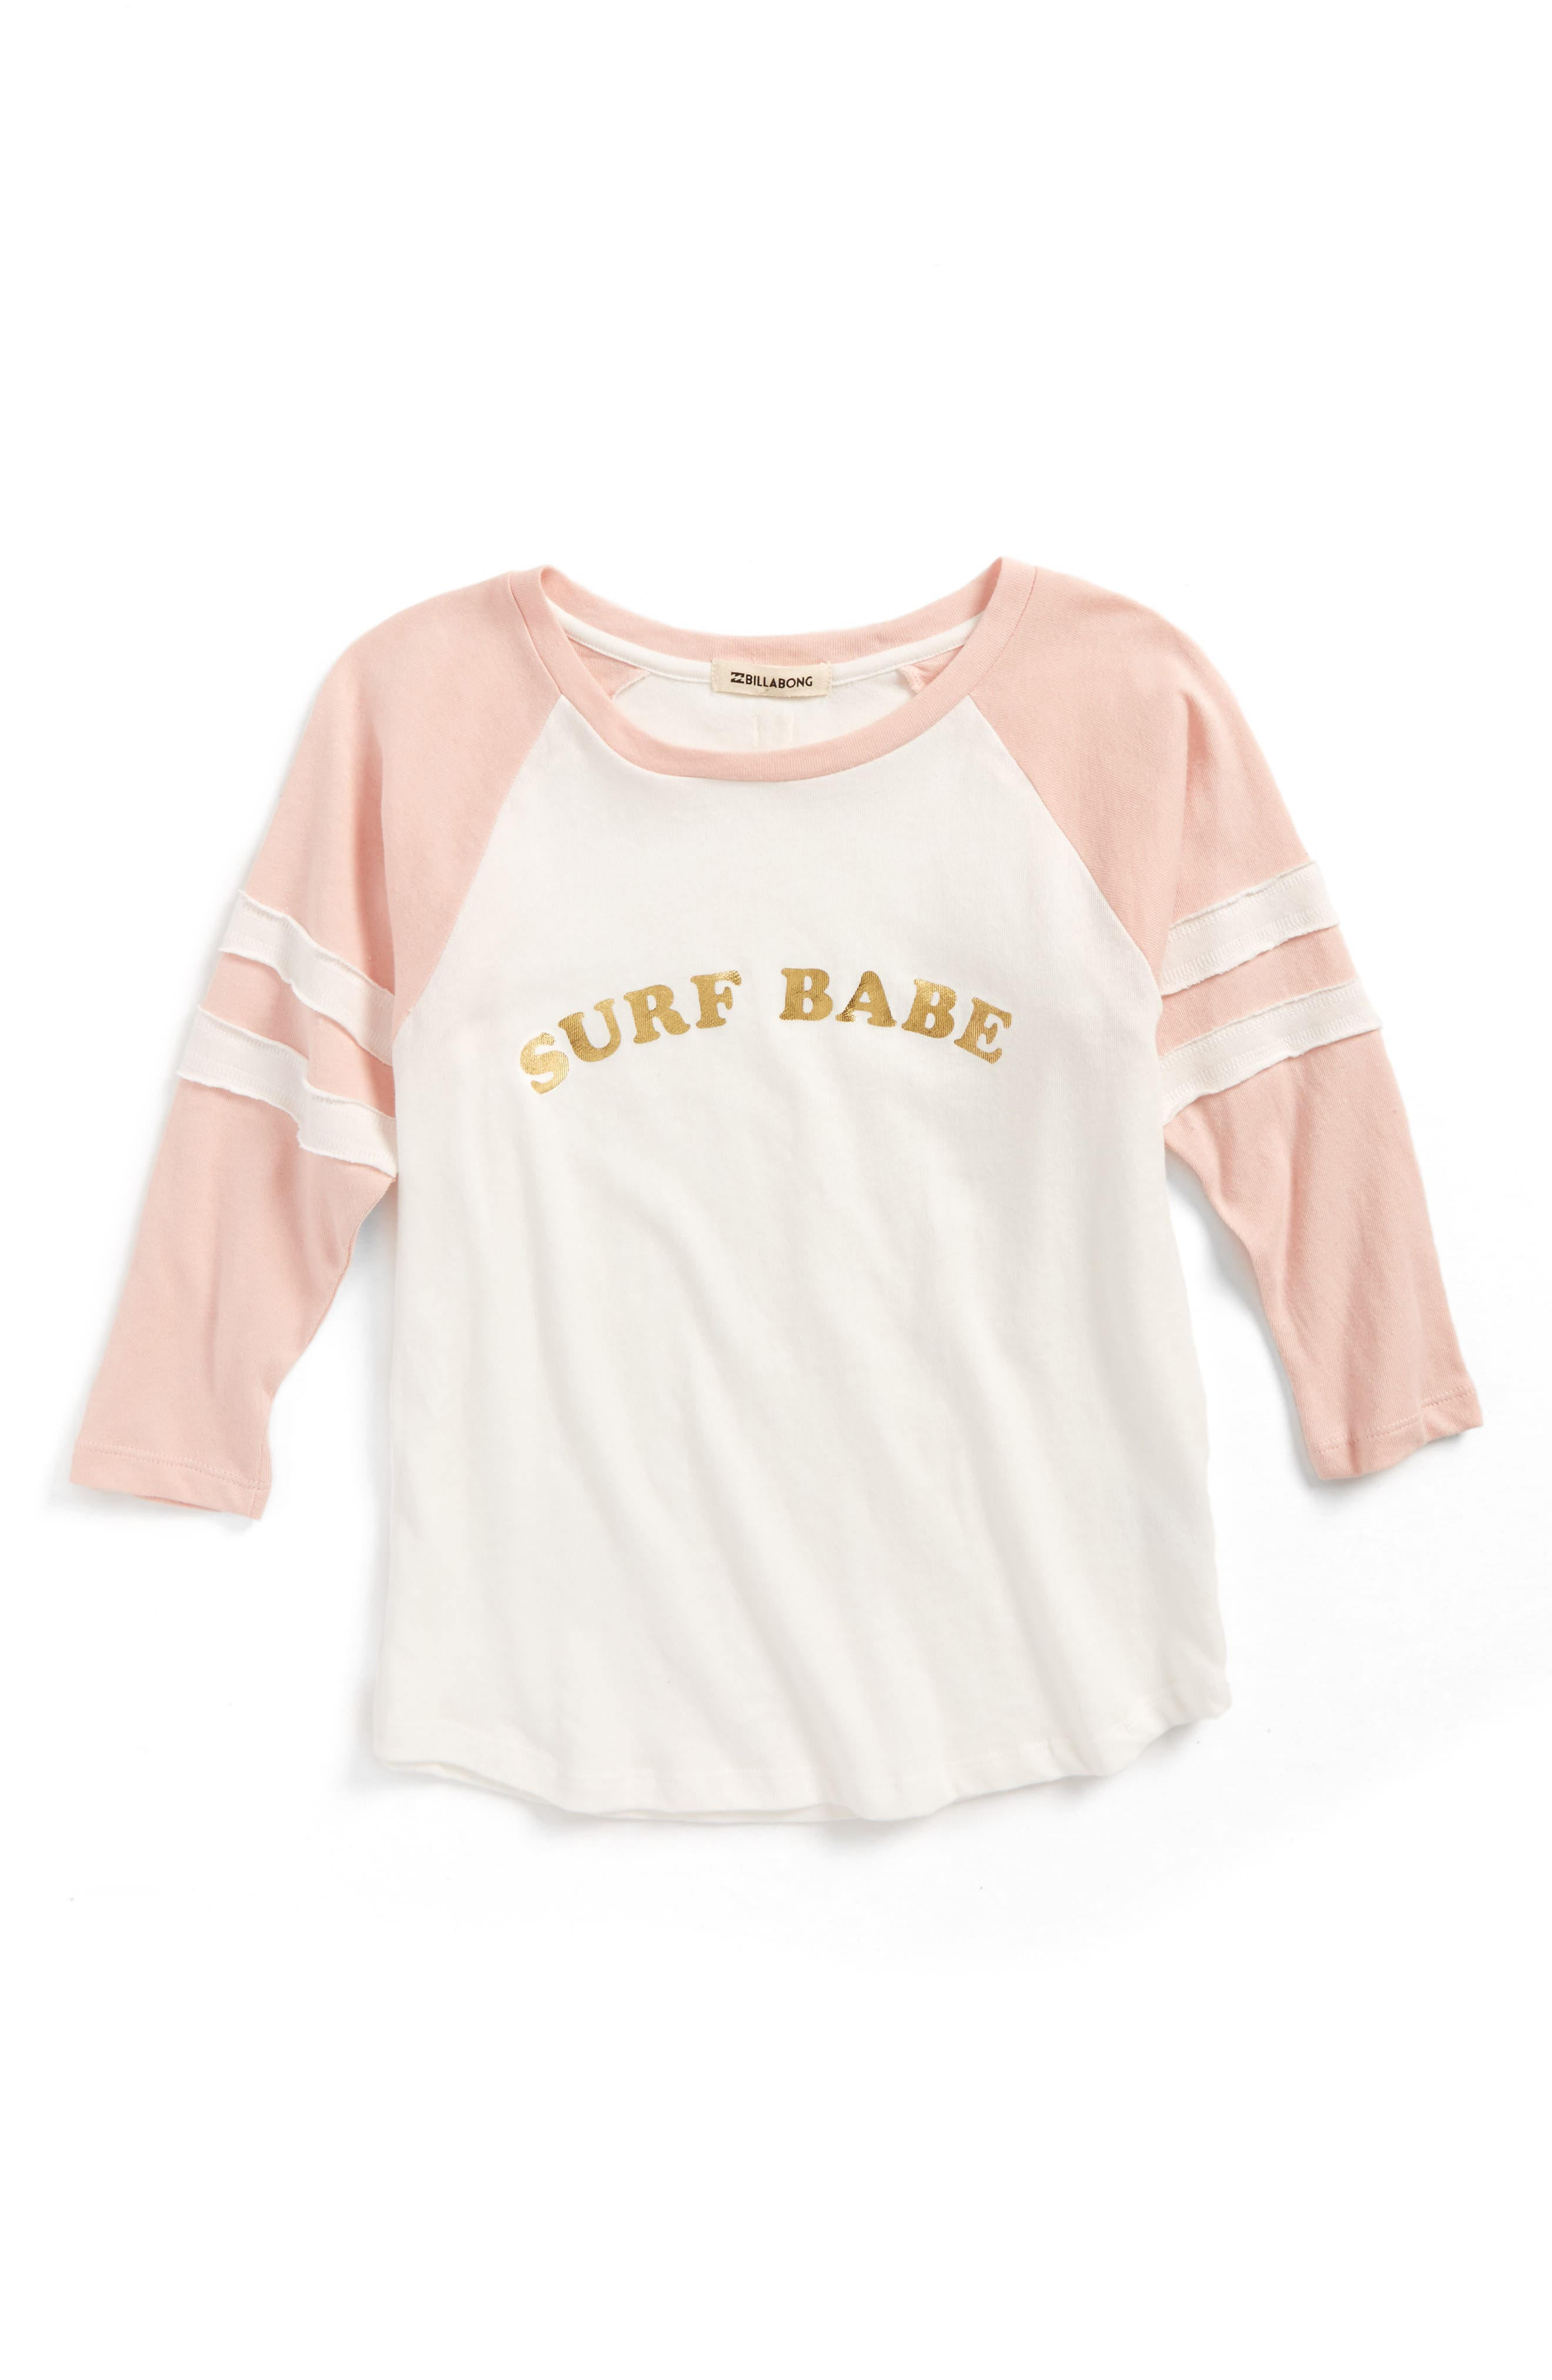 Surf Babe Graphic Tee,                         Main,                         color, 654